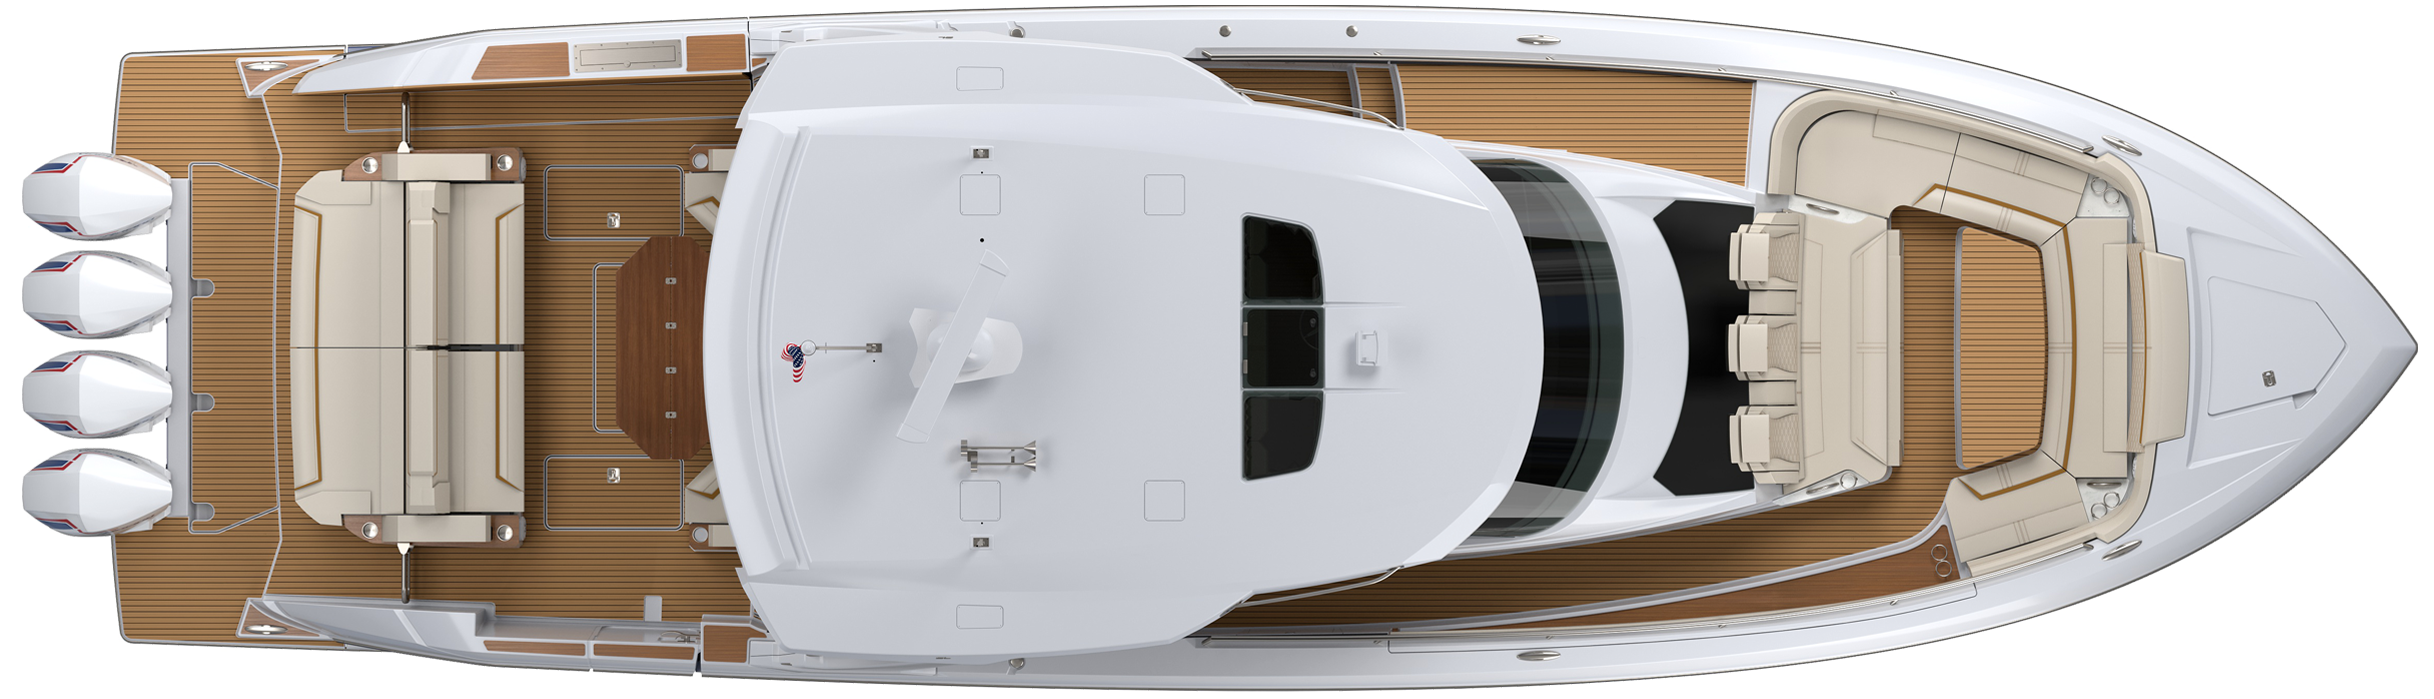 38 LS Exterior Plan View With Hardtop